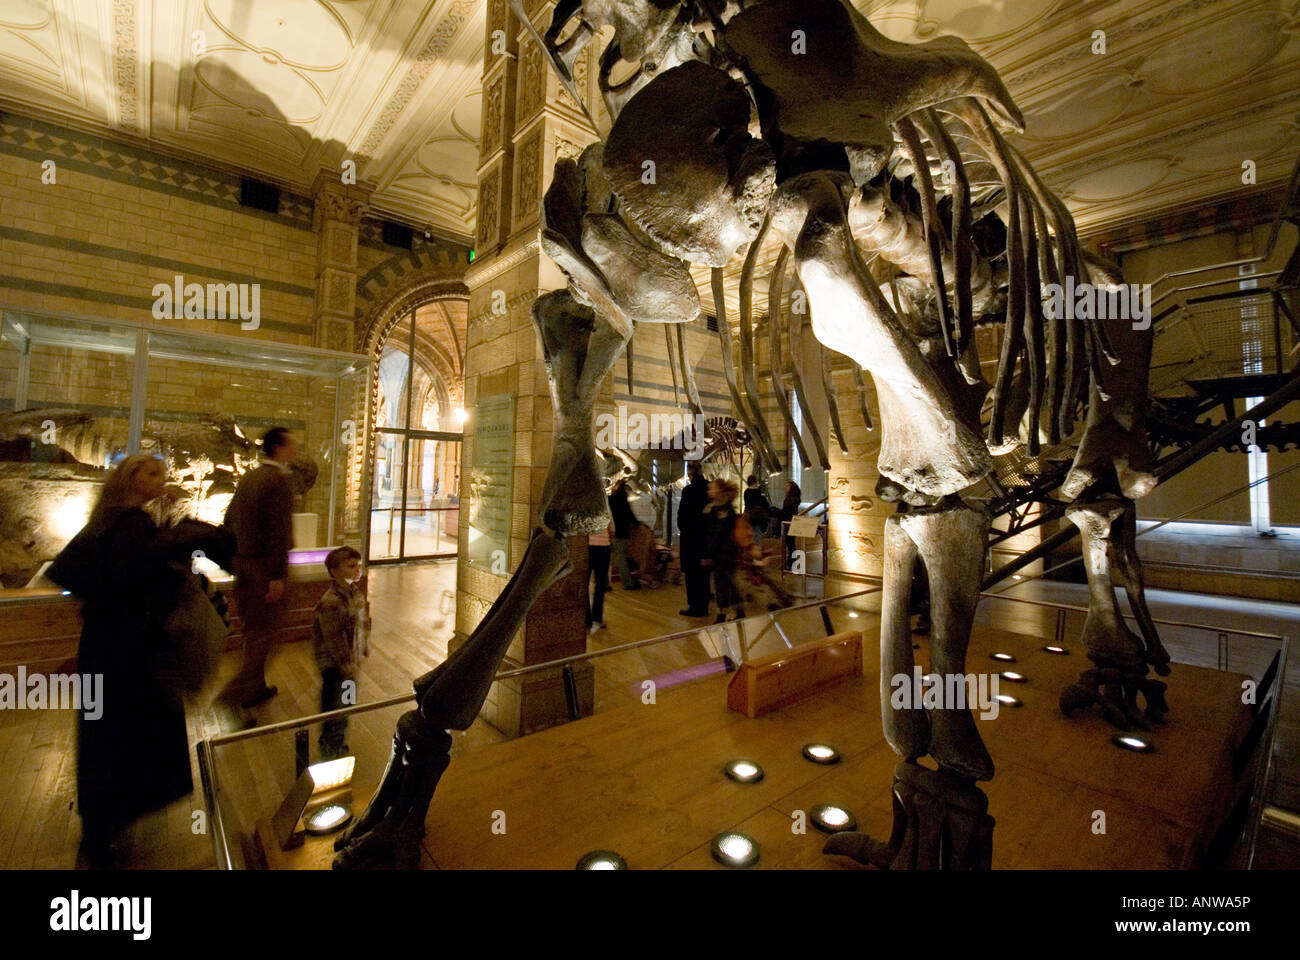 Natural History Museum dinosaurs London - Stock Image